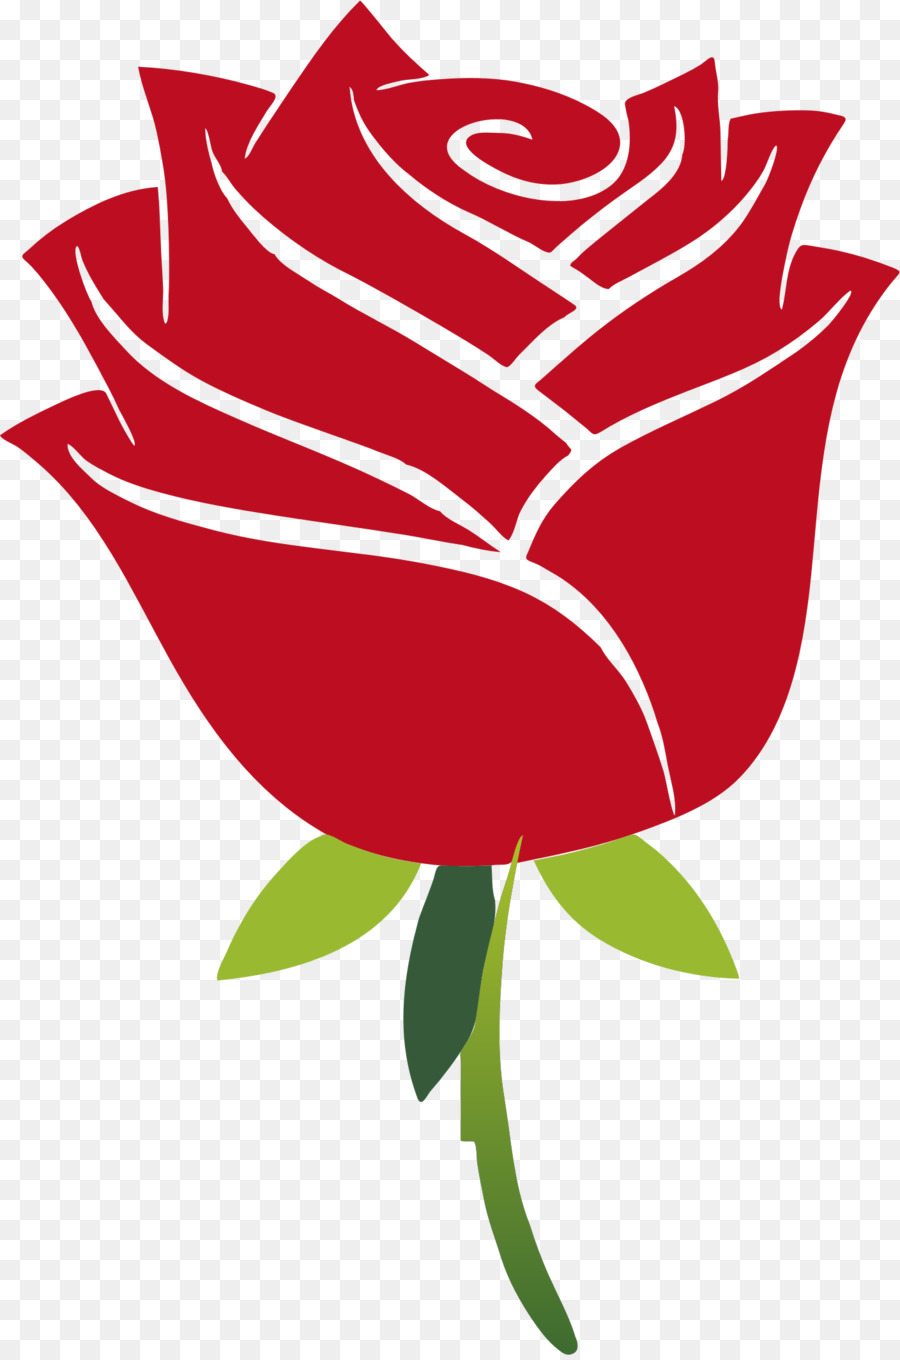 Free Beauty And The Beast Rose Silhouette, Download Free Clip Art.